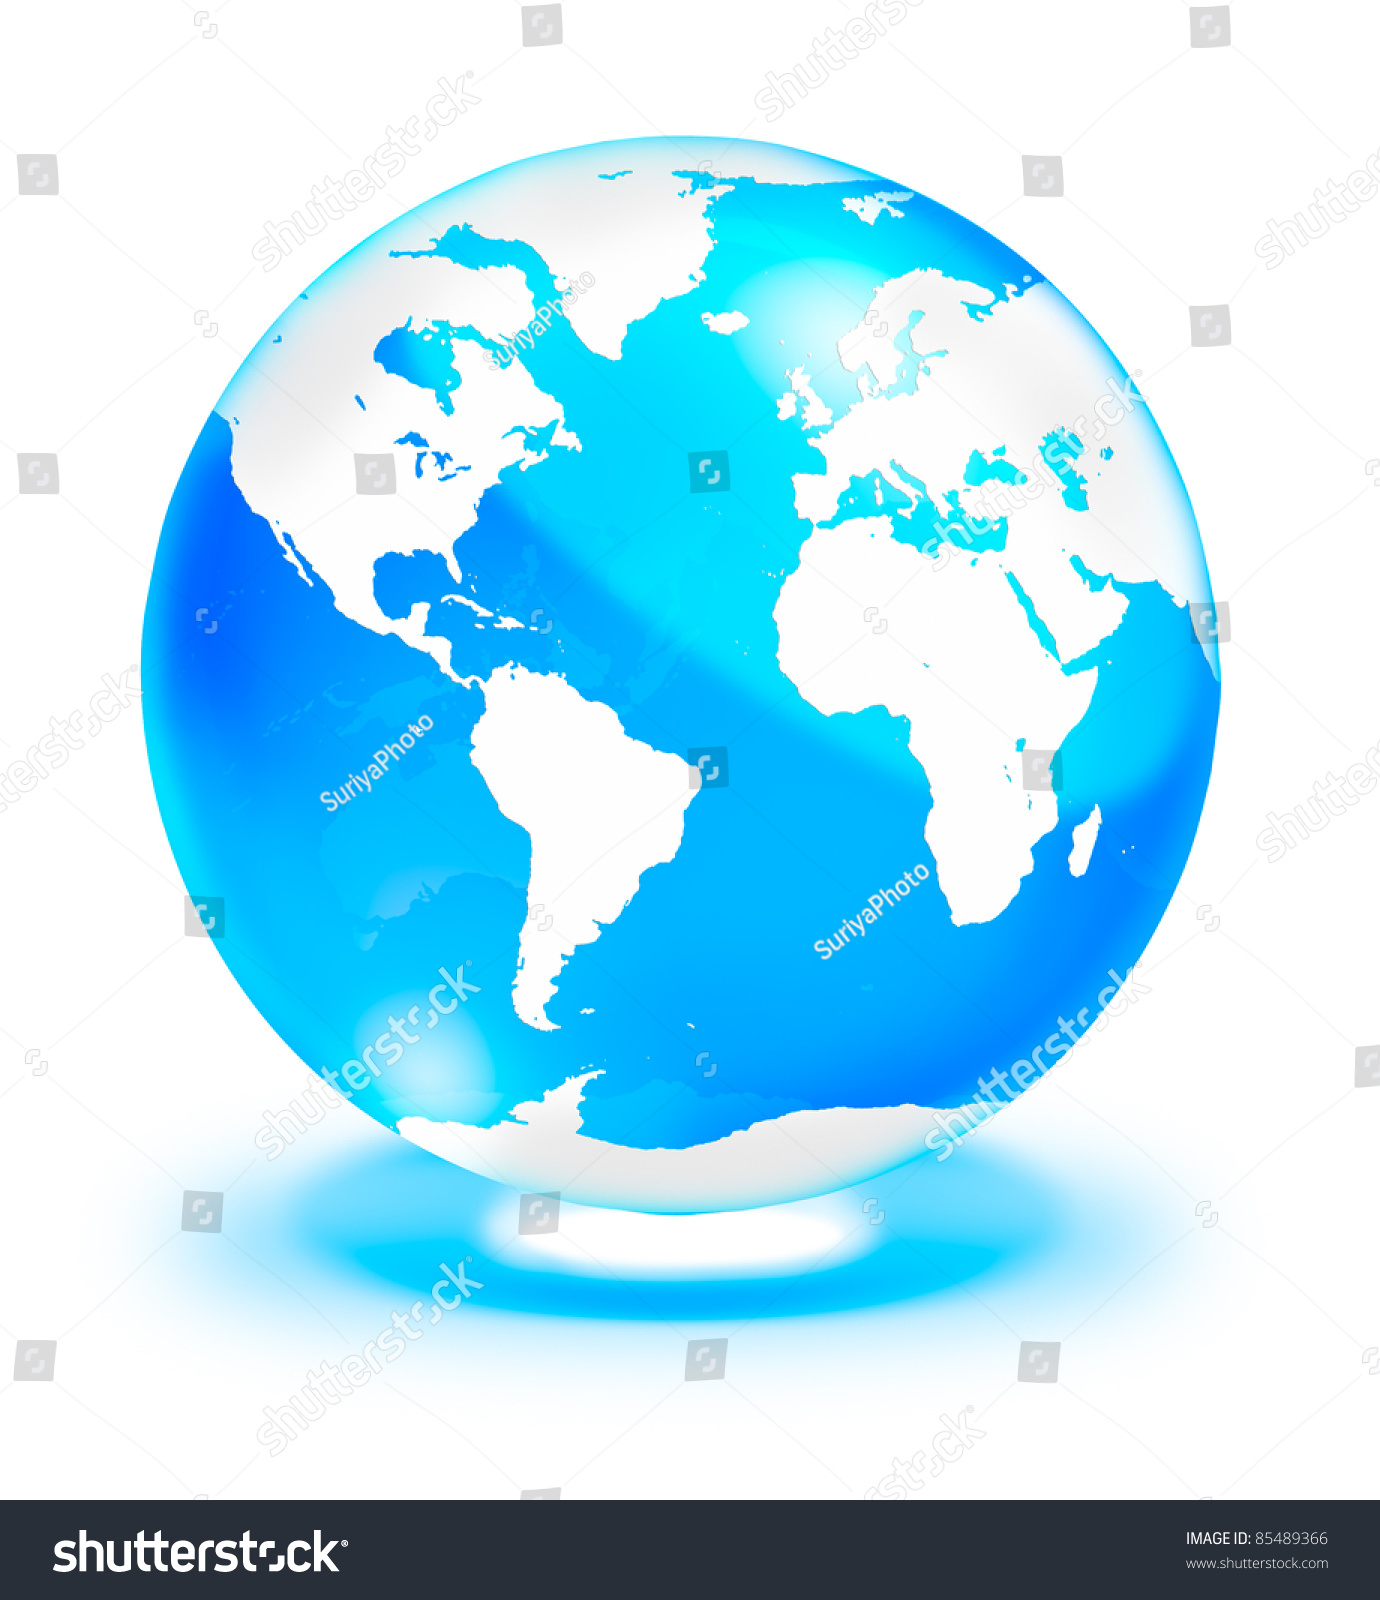 Crystal clear globe world map isolated stock illustration 85489366 crystal clear globe with world map isolated on white background gumiabroncs Gallery